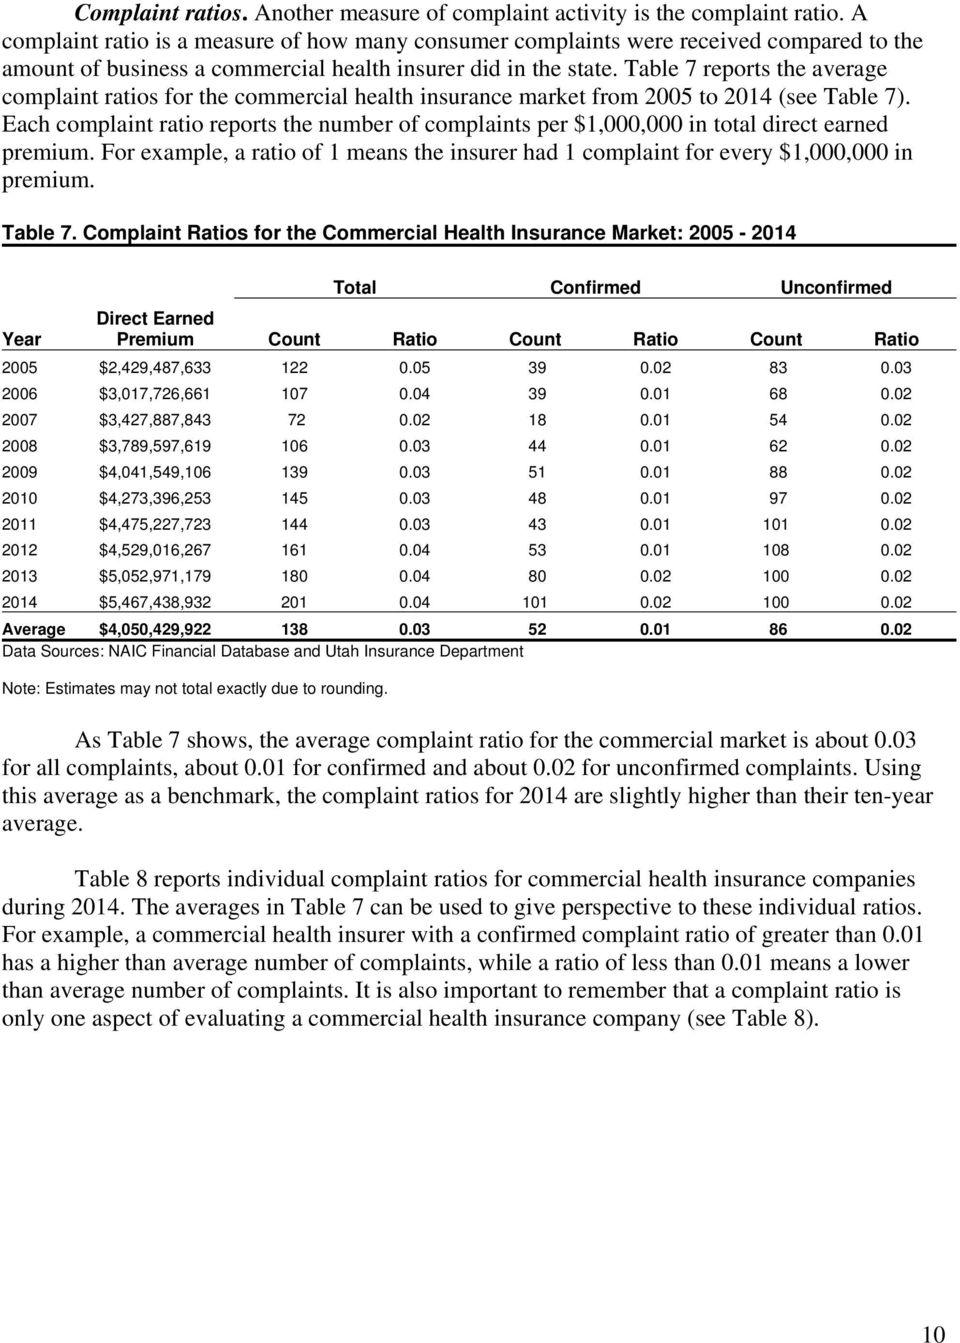 Table 7 reports the average complaint ratios for the commercial health insurance market from 2005 to 2014 (see Table 7).